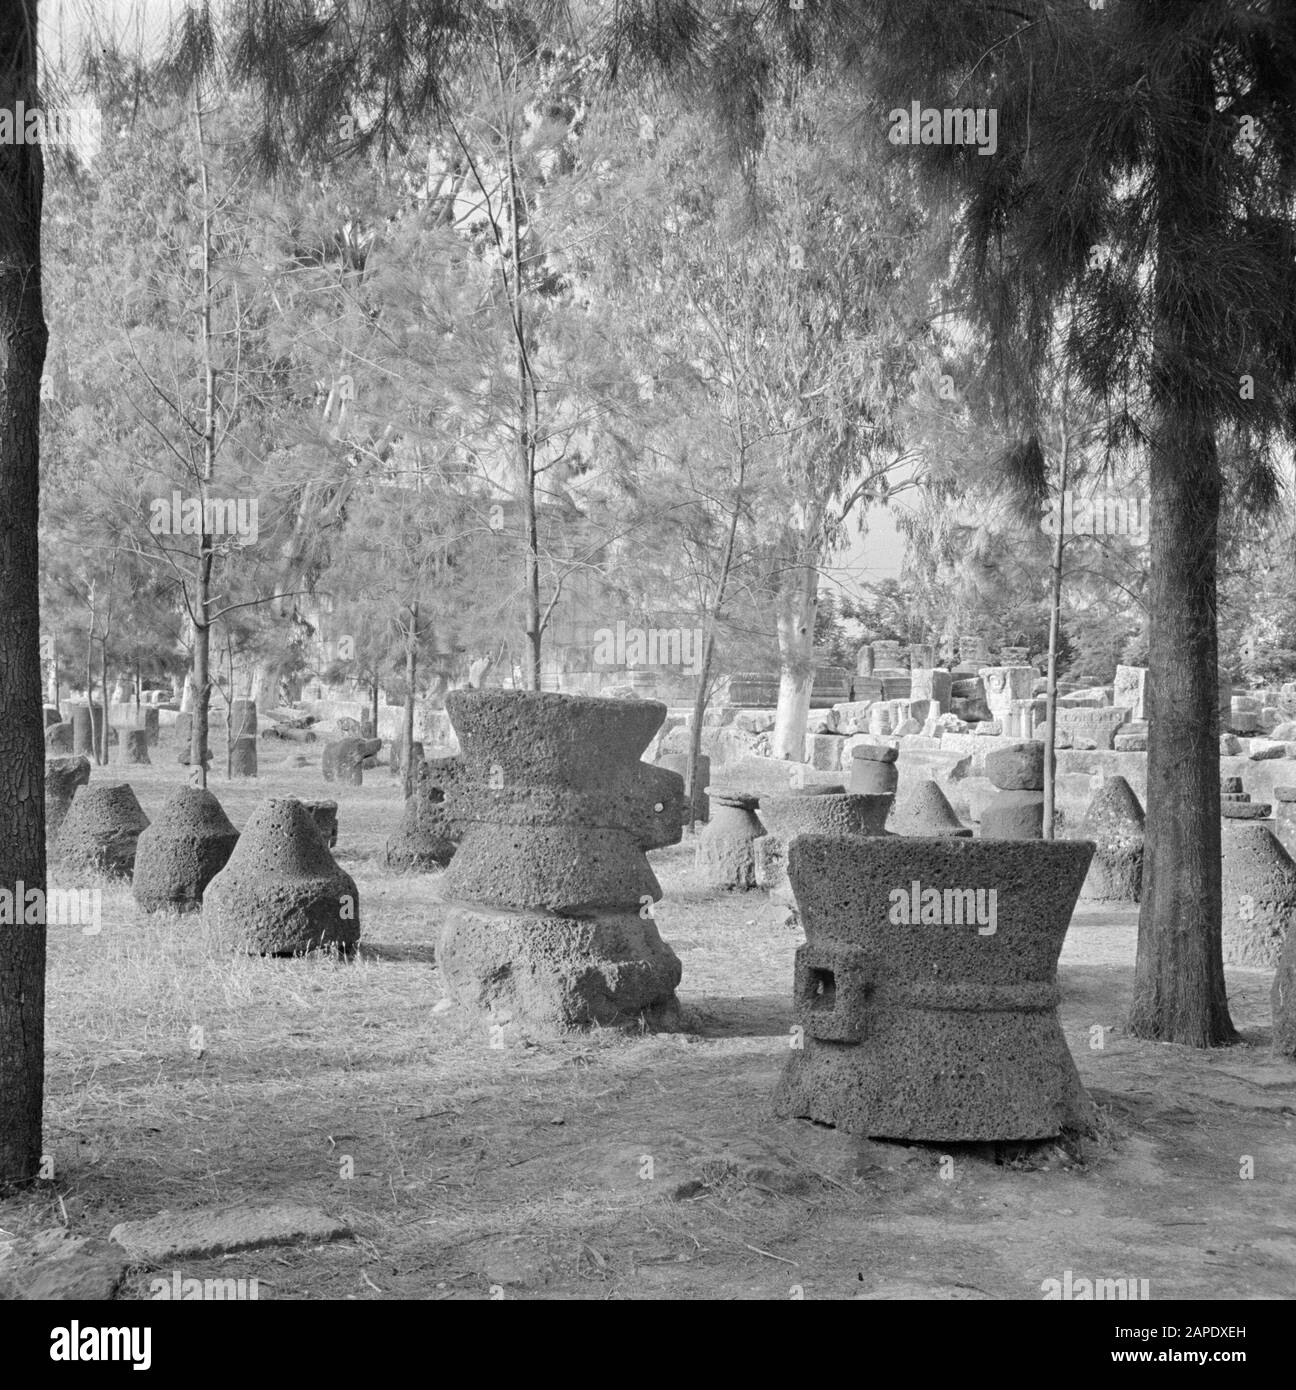 Israel 1948-1949:Galilee Description: Archaeological finds - including wine presses and architectural fragments - exhibited in Kapernaum on the shore of Lake Genesareth/Tiberias Date: 1948 Location: Israel, Capernaum, Tiberias Keywords: archeology, trees, history, landscapes, exhibitions, viticulture Stock Photo